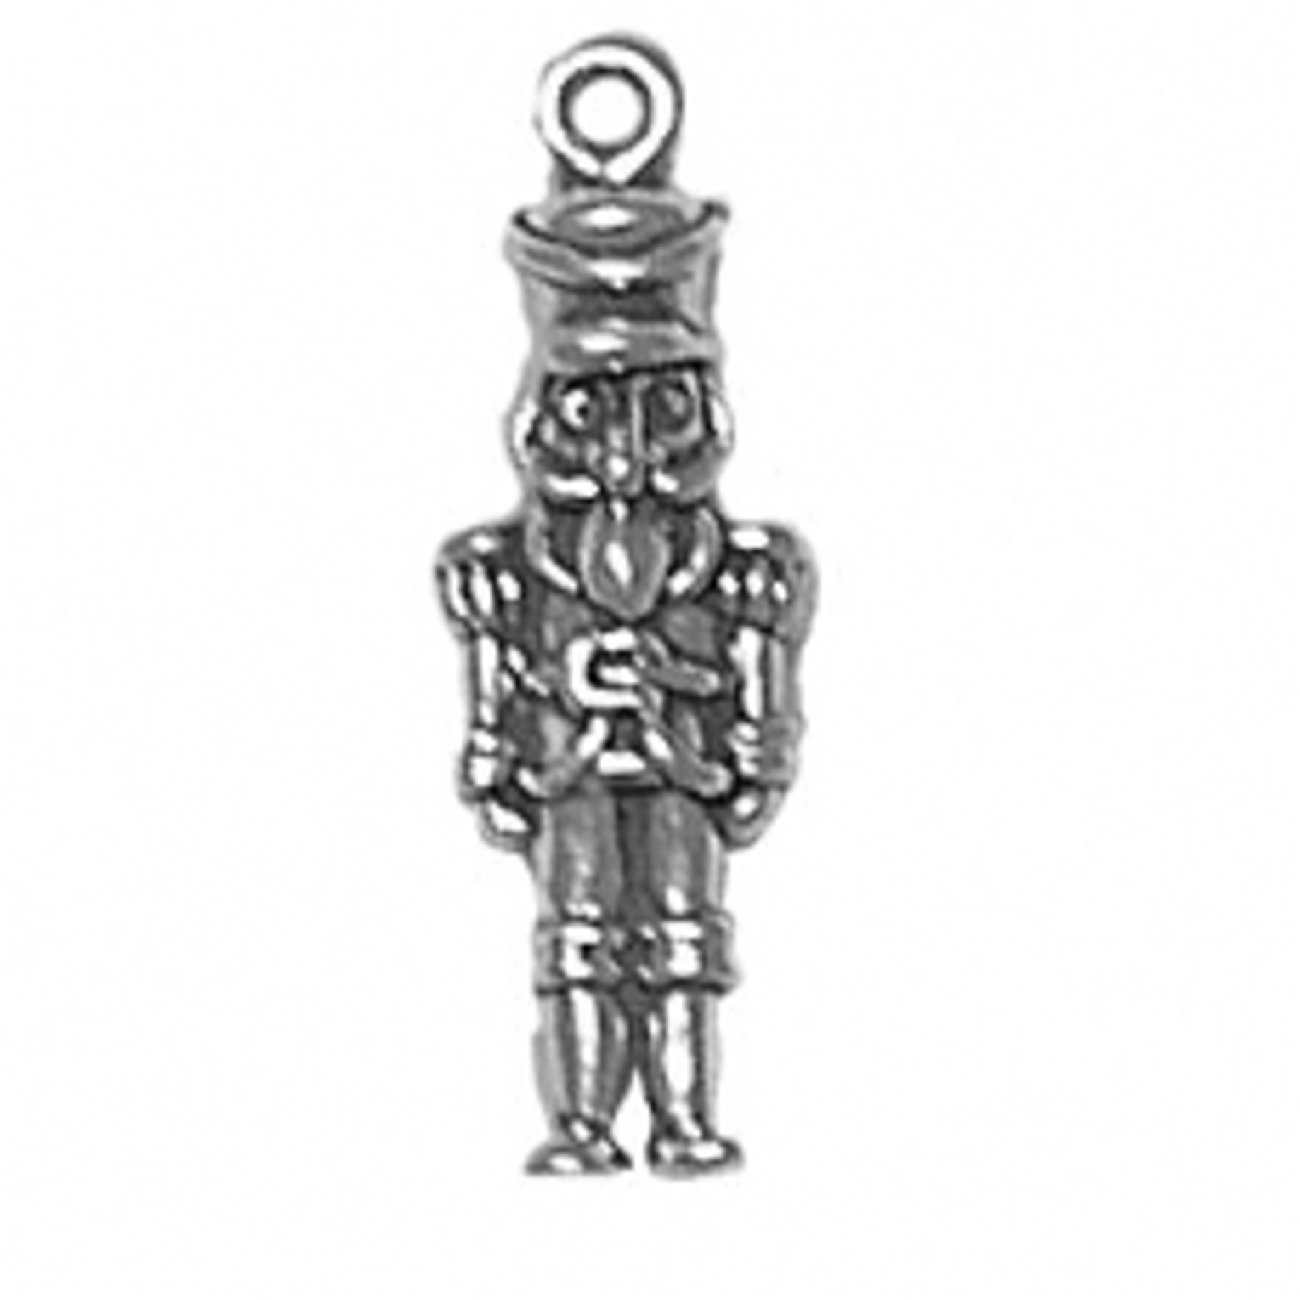 Sterling Silver 7 4.5mm Charm Bracelet With Attached 3D Wooden Military Toy Soldier Charm